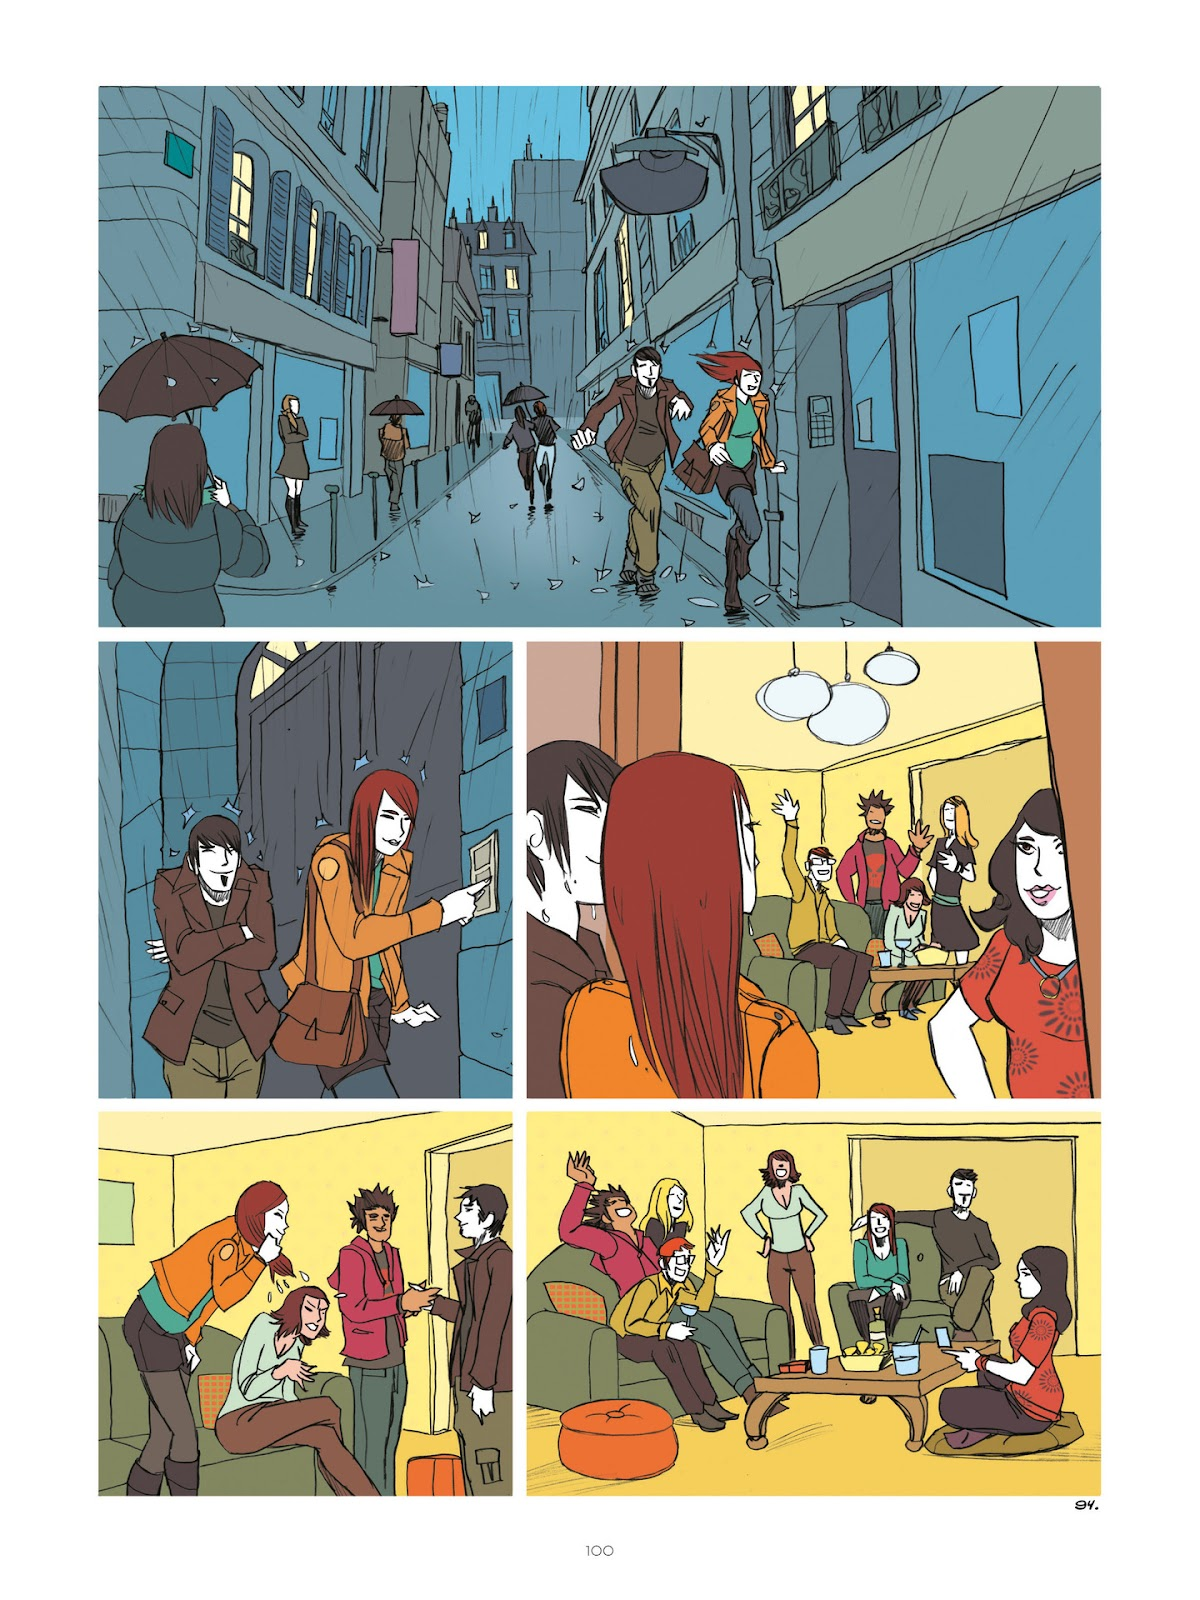 Read online Diary of A Femen comic -  Issue # TPB - 102